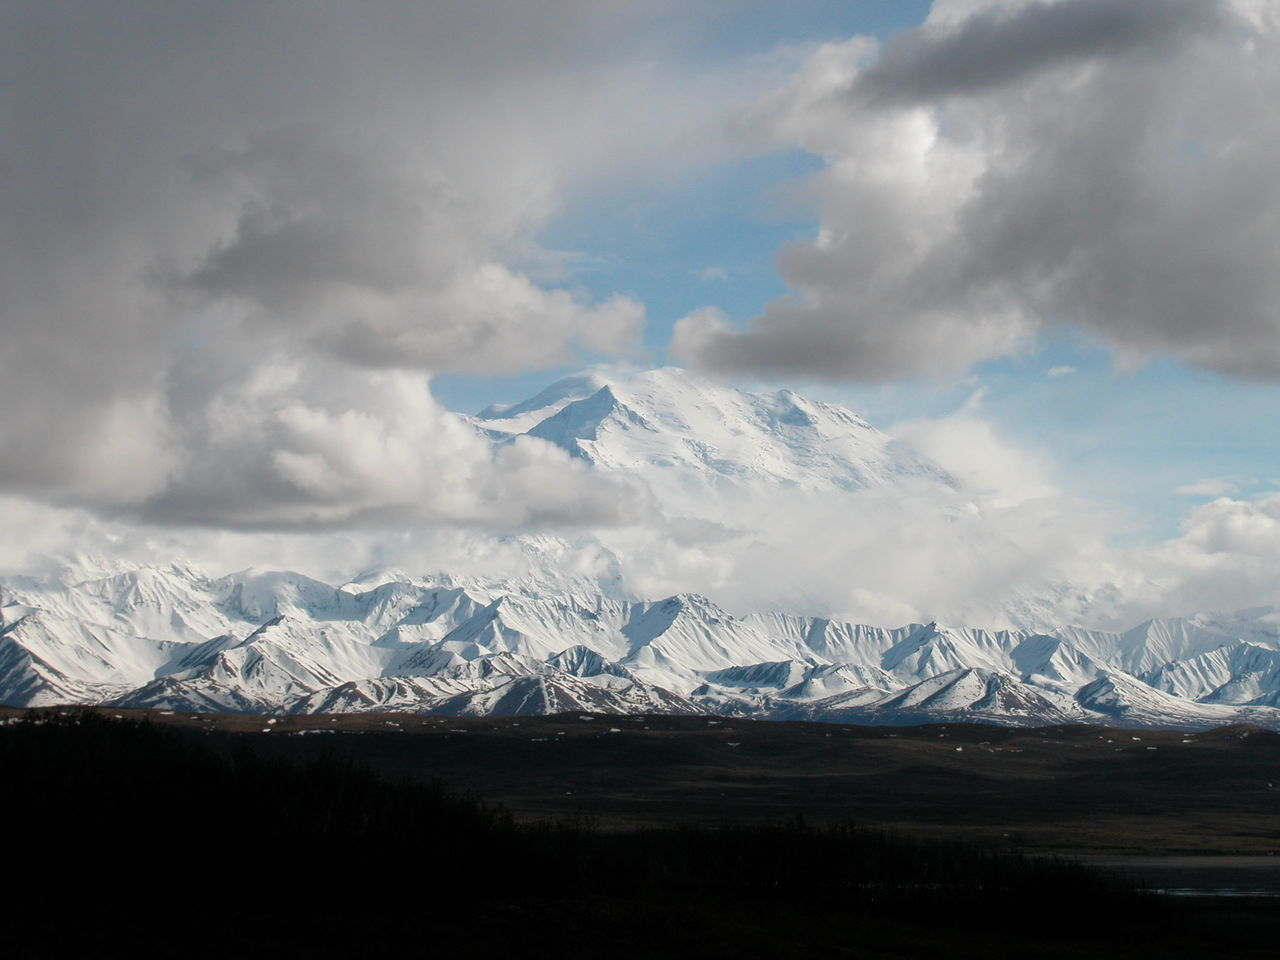 Alaska Beauty In Nature Cloud - Sky Cold Temperature Day Denali Denali National Park Glacier Landscape Mountain Mountain Peak Mountain Range Mt Denali Mt McKinley Nature No People Outdoors Scenics Sky Snow Snowcapped Mountain Winter